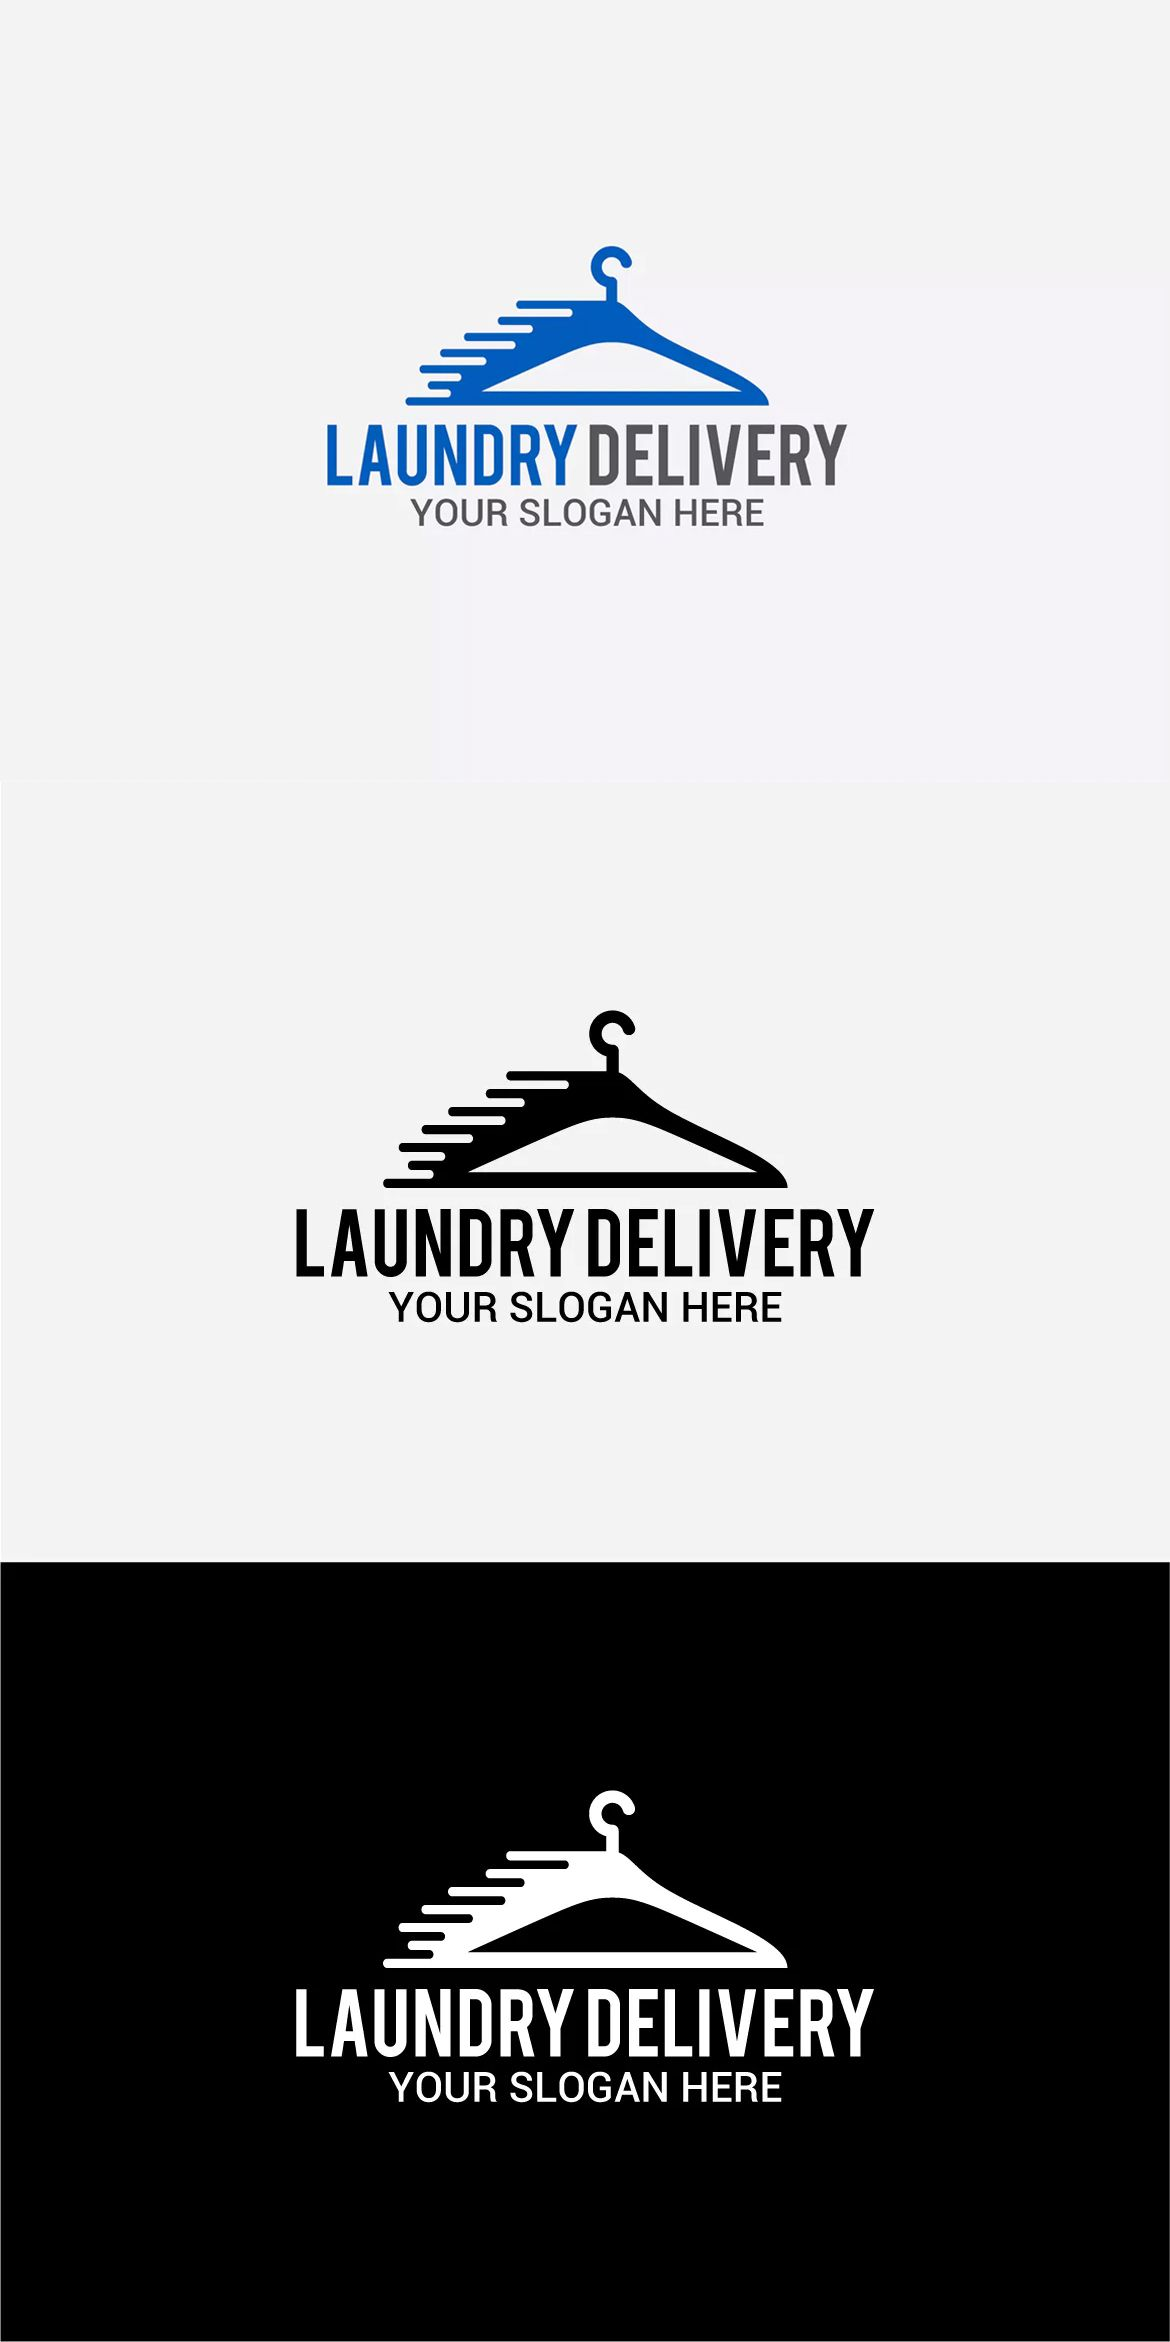 Laundry Delivery By Shazidesigns On Laundry Delivery Laundry